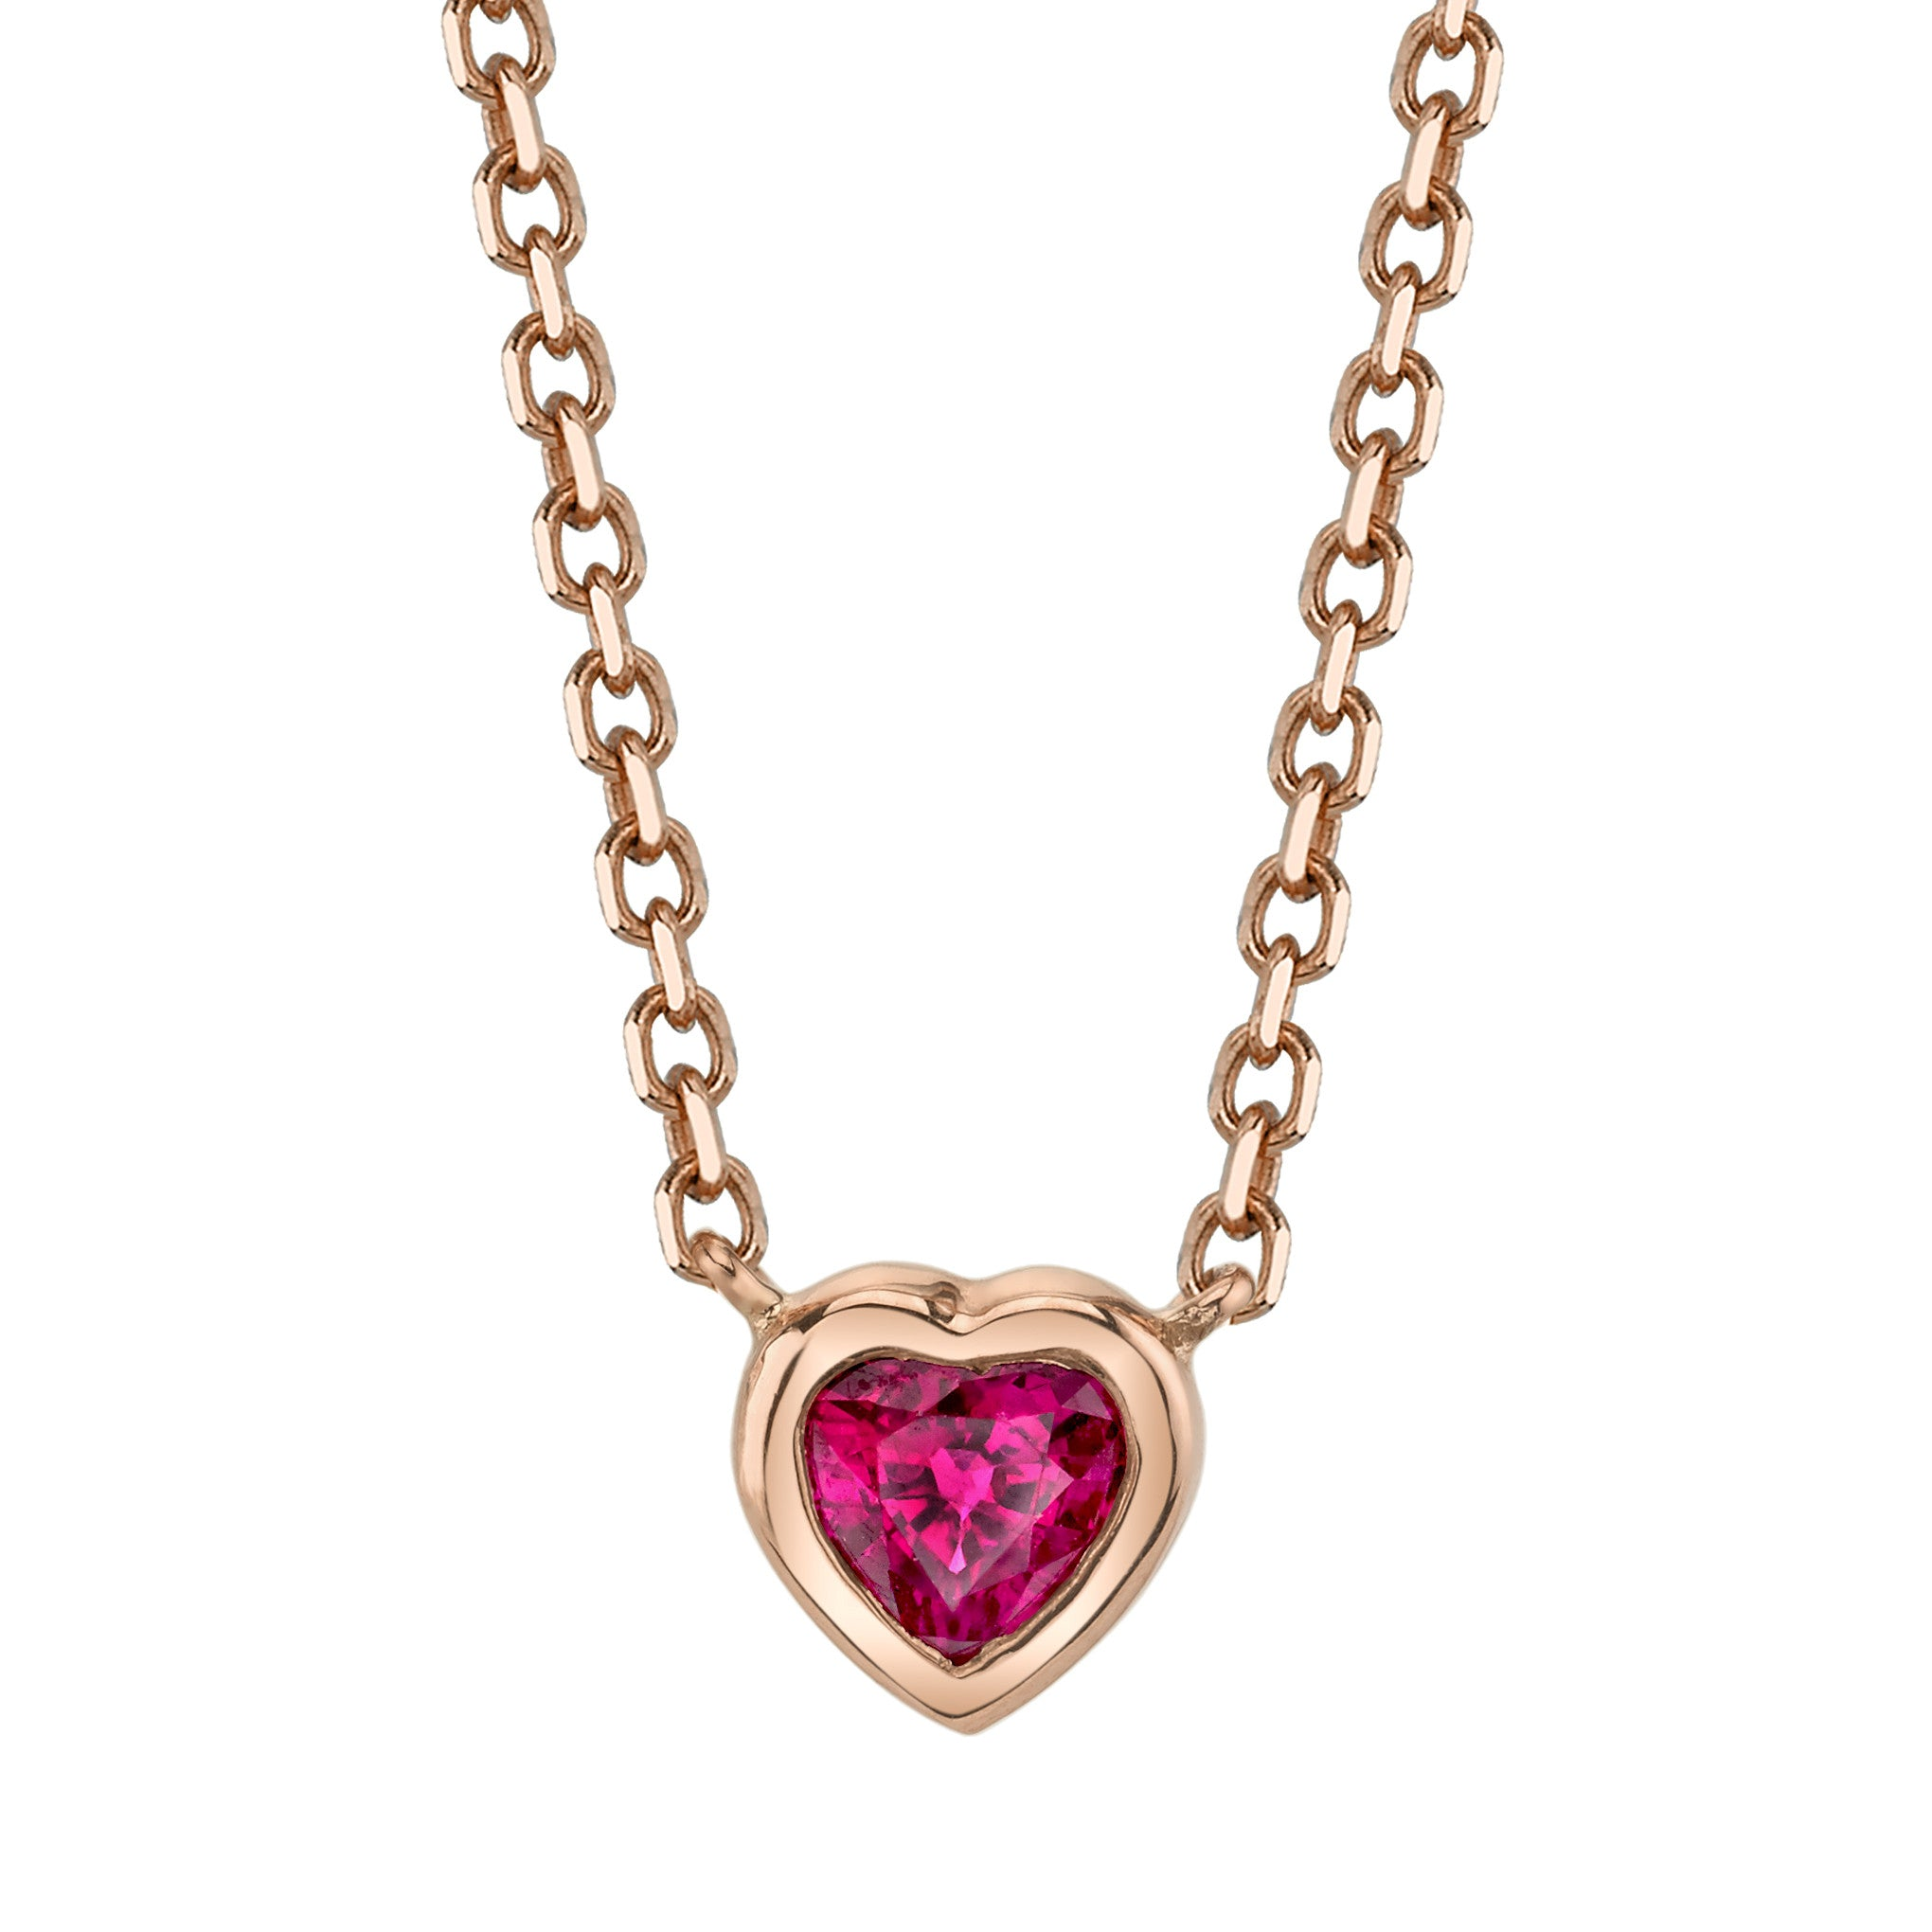 Ruby heart necklace anita ko ruby heart necklace aloadofball Image collections